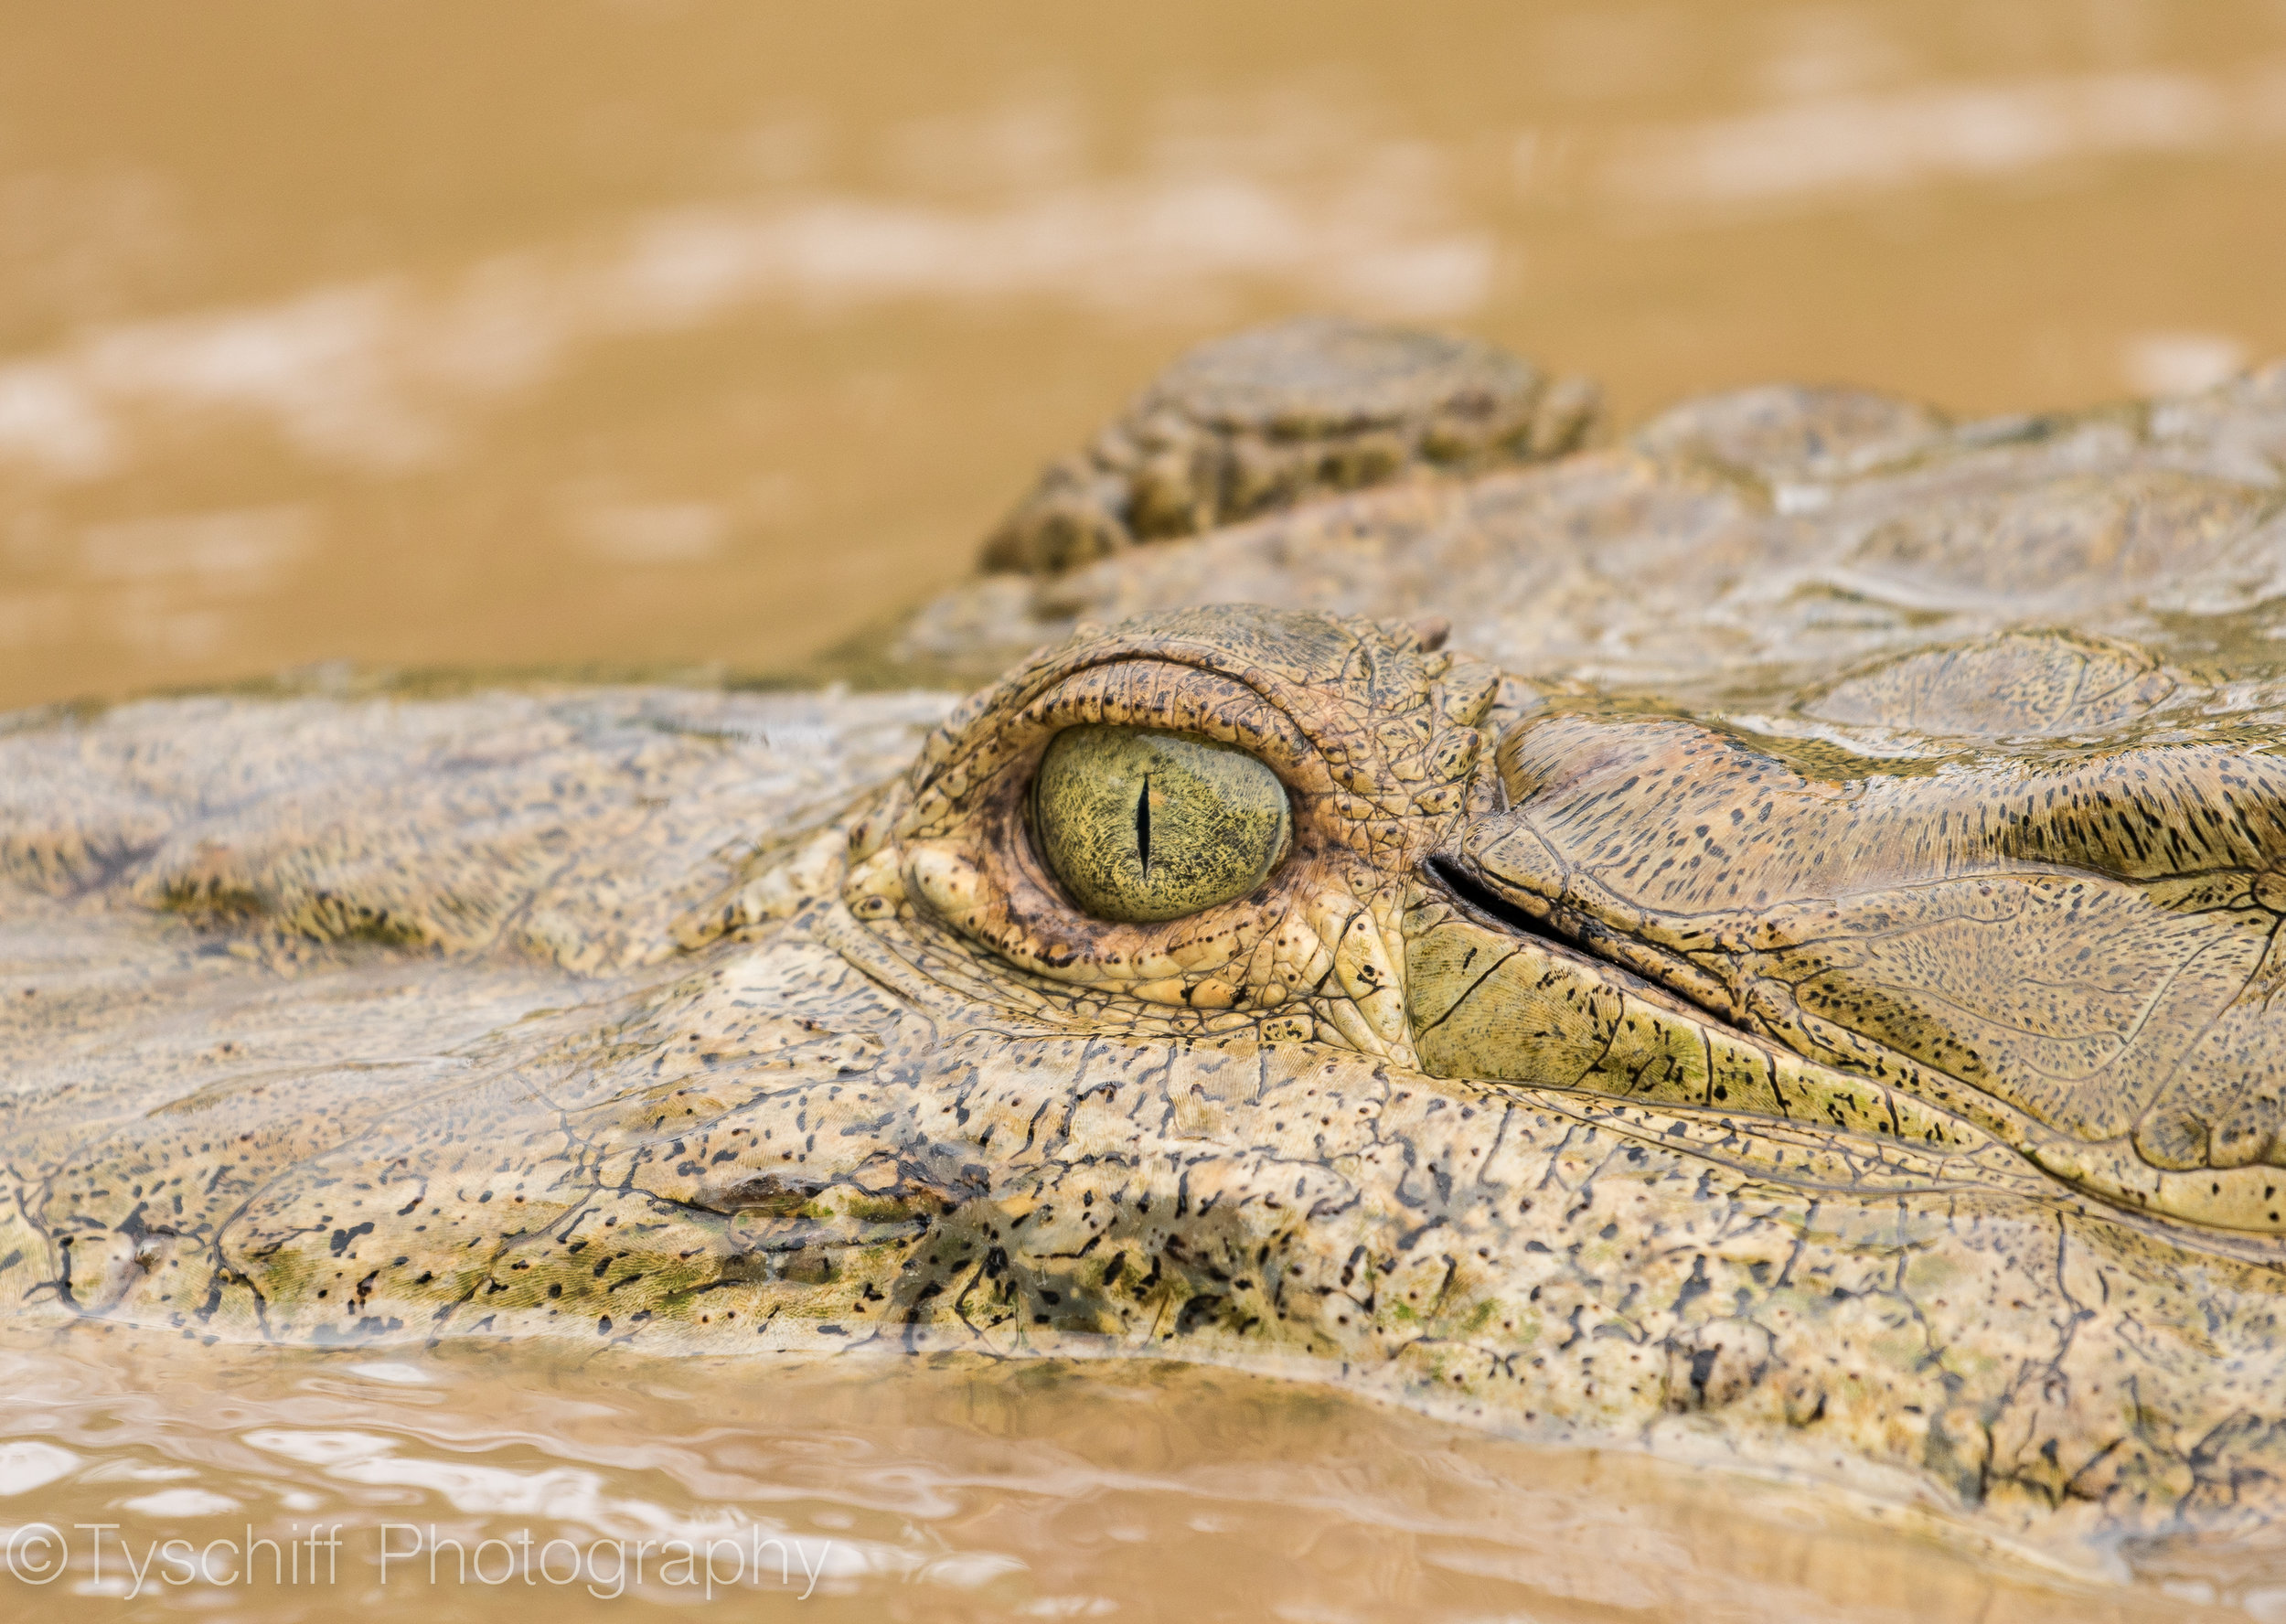 Costa Rica - The Eye of the Croc